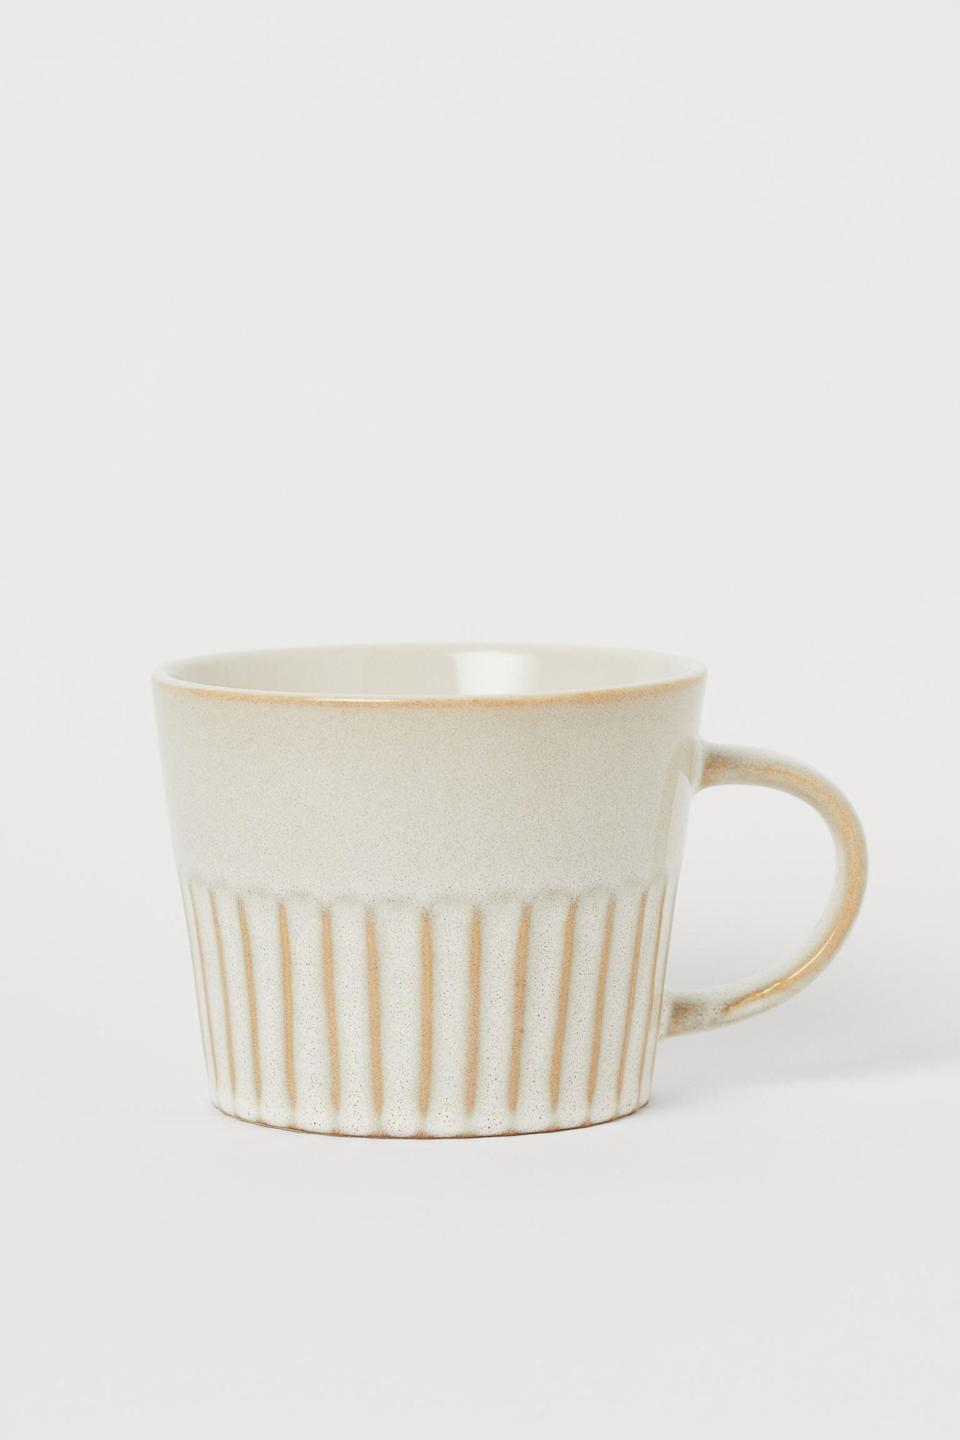 <p>We can't think of a cup more elegant than this stylish <span>H&amp;M Ceramic Mug</span> ($10). It's the type you'll want to leave on display long after using it.</p>